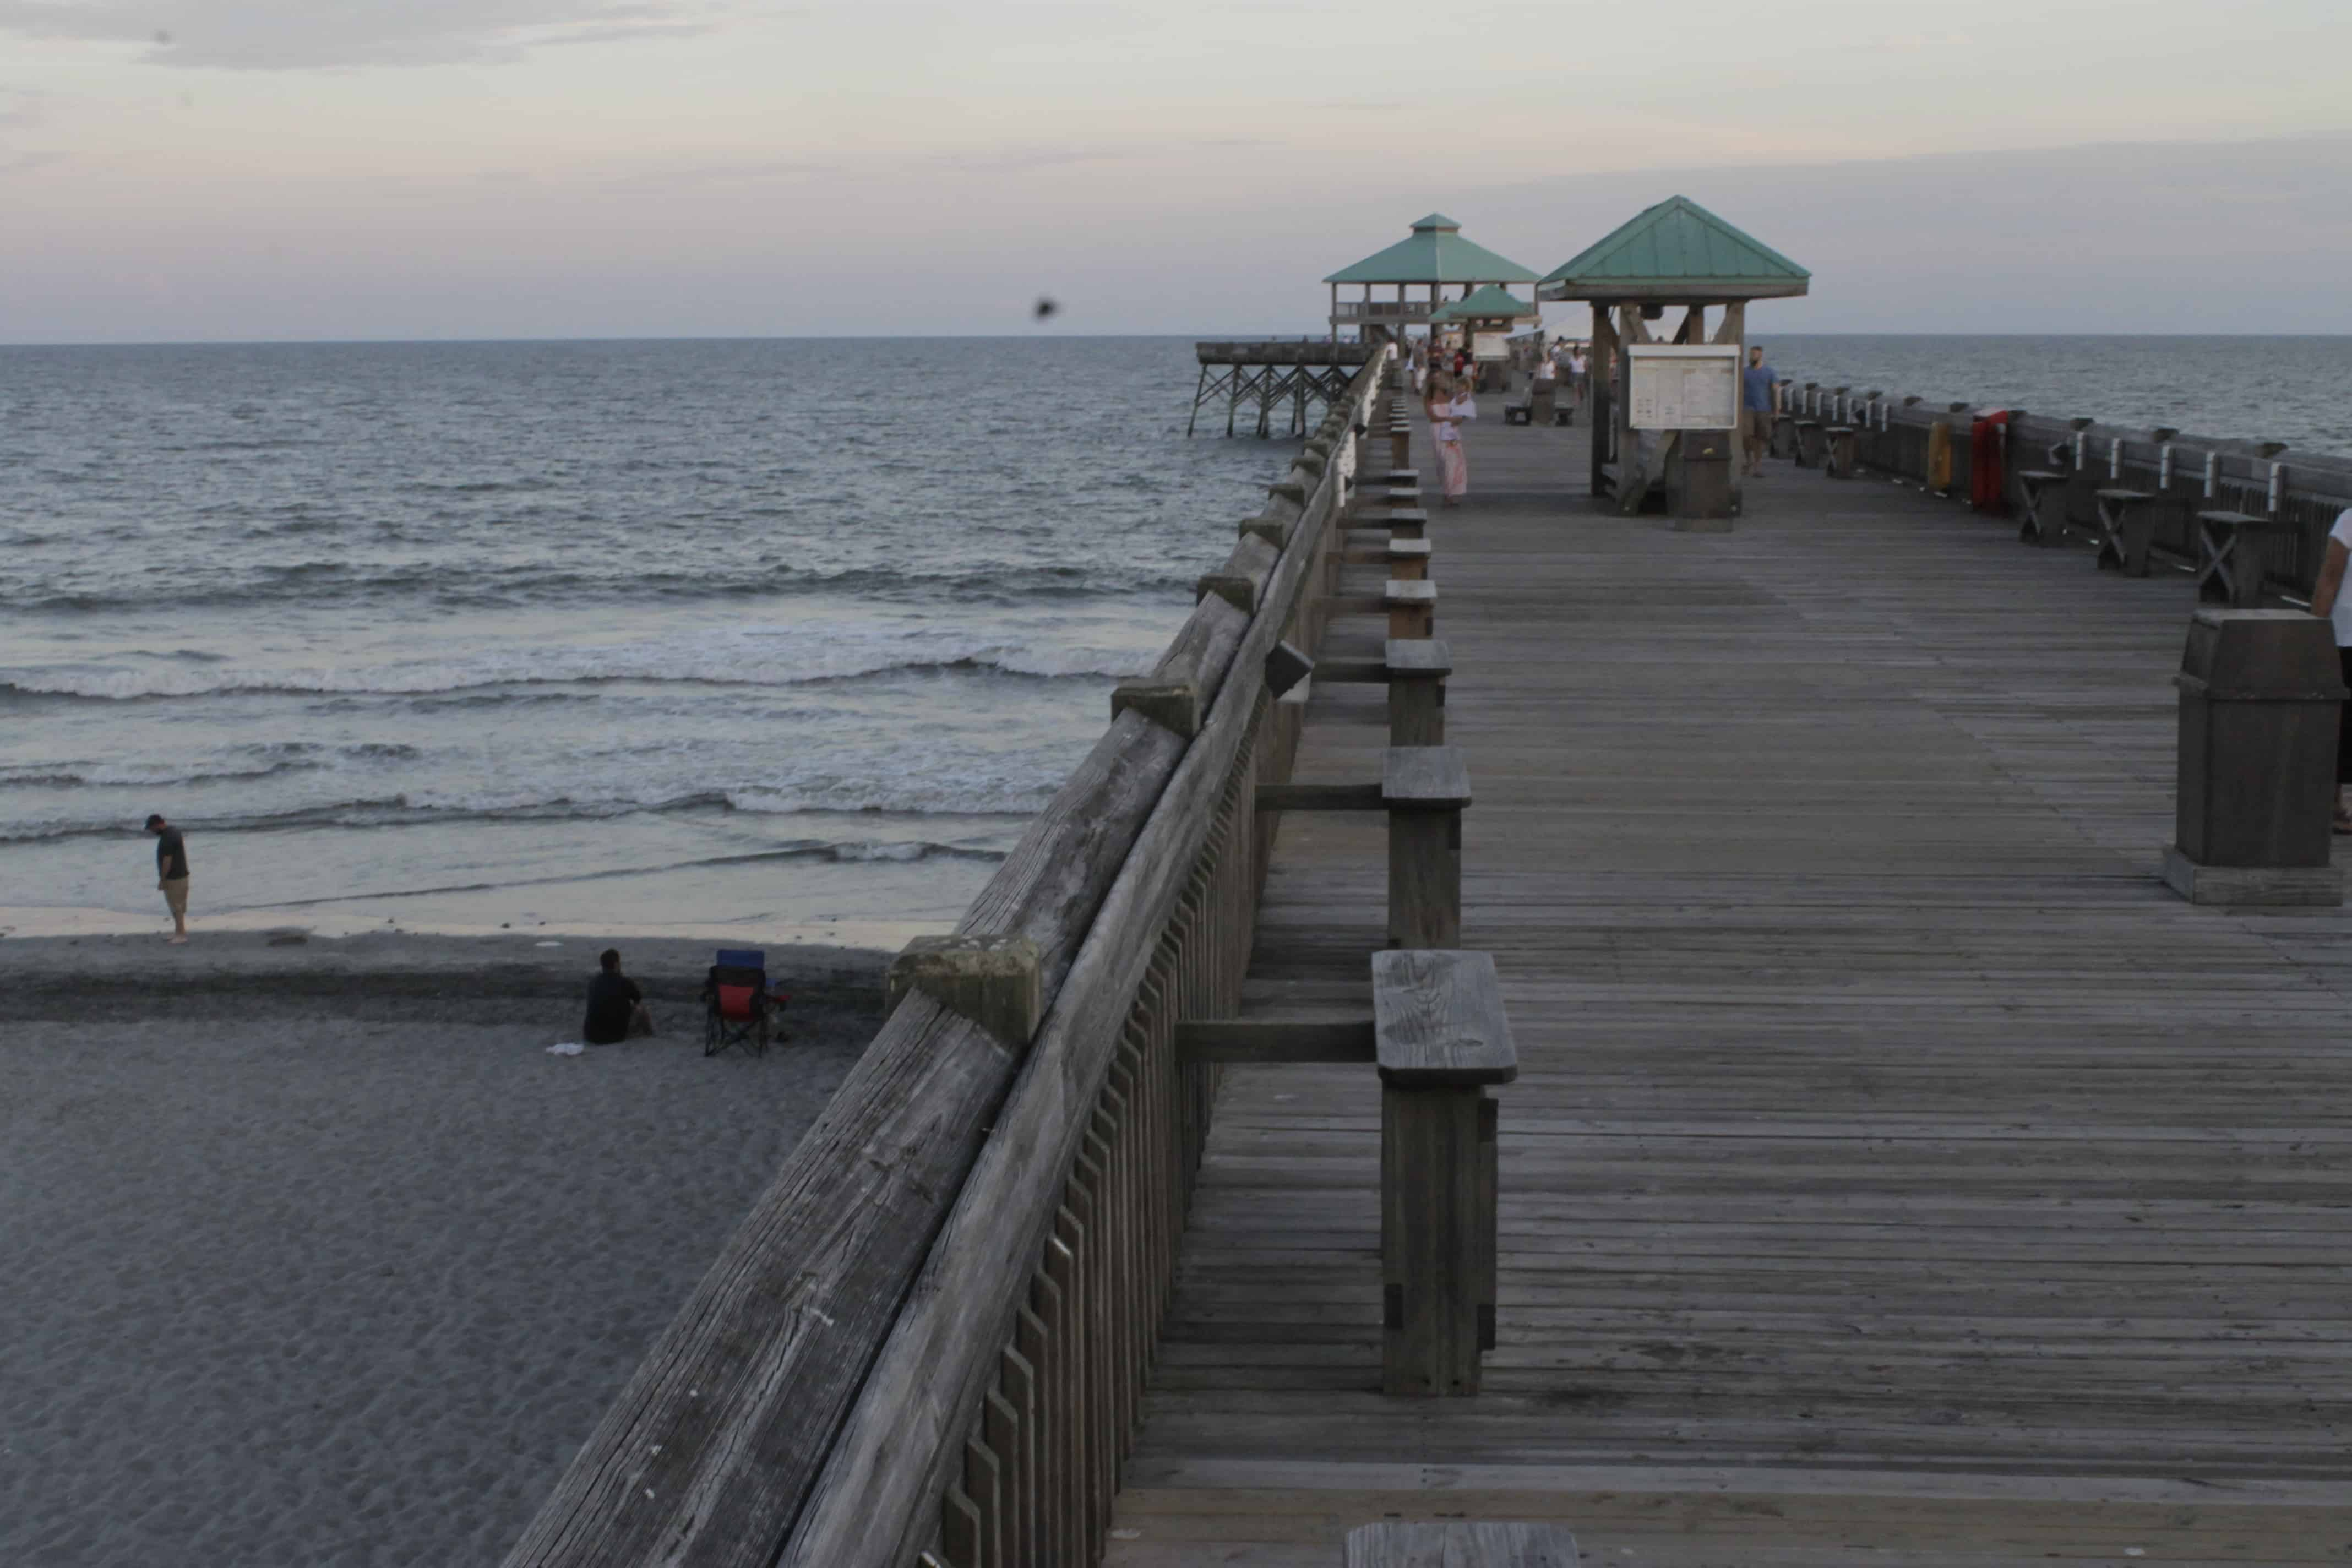 101 in 1001: Keeping it Sweet & Cool at Folly Pier